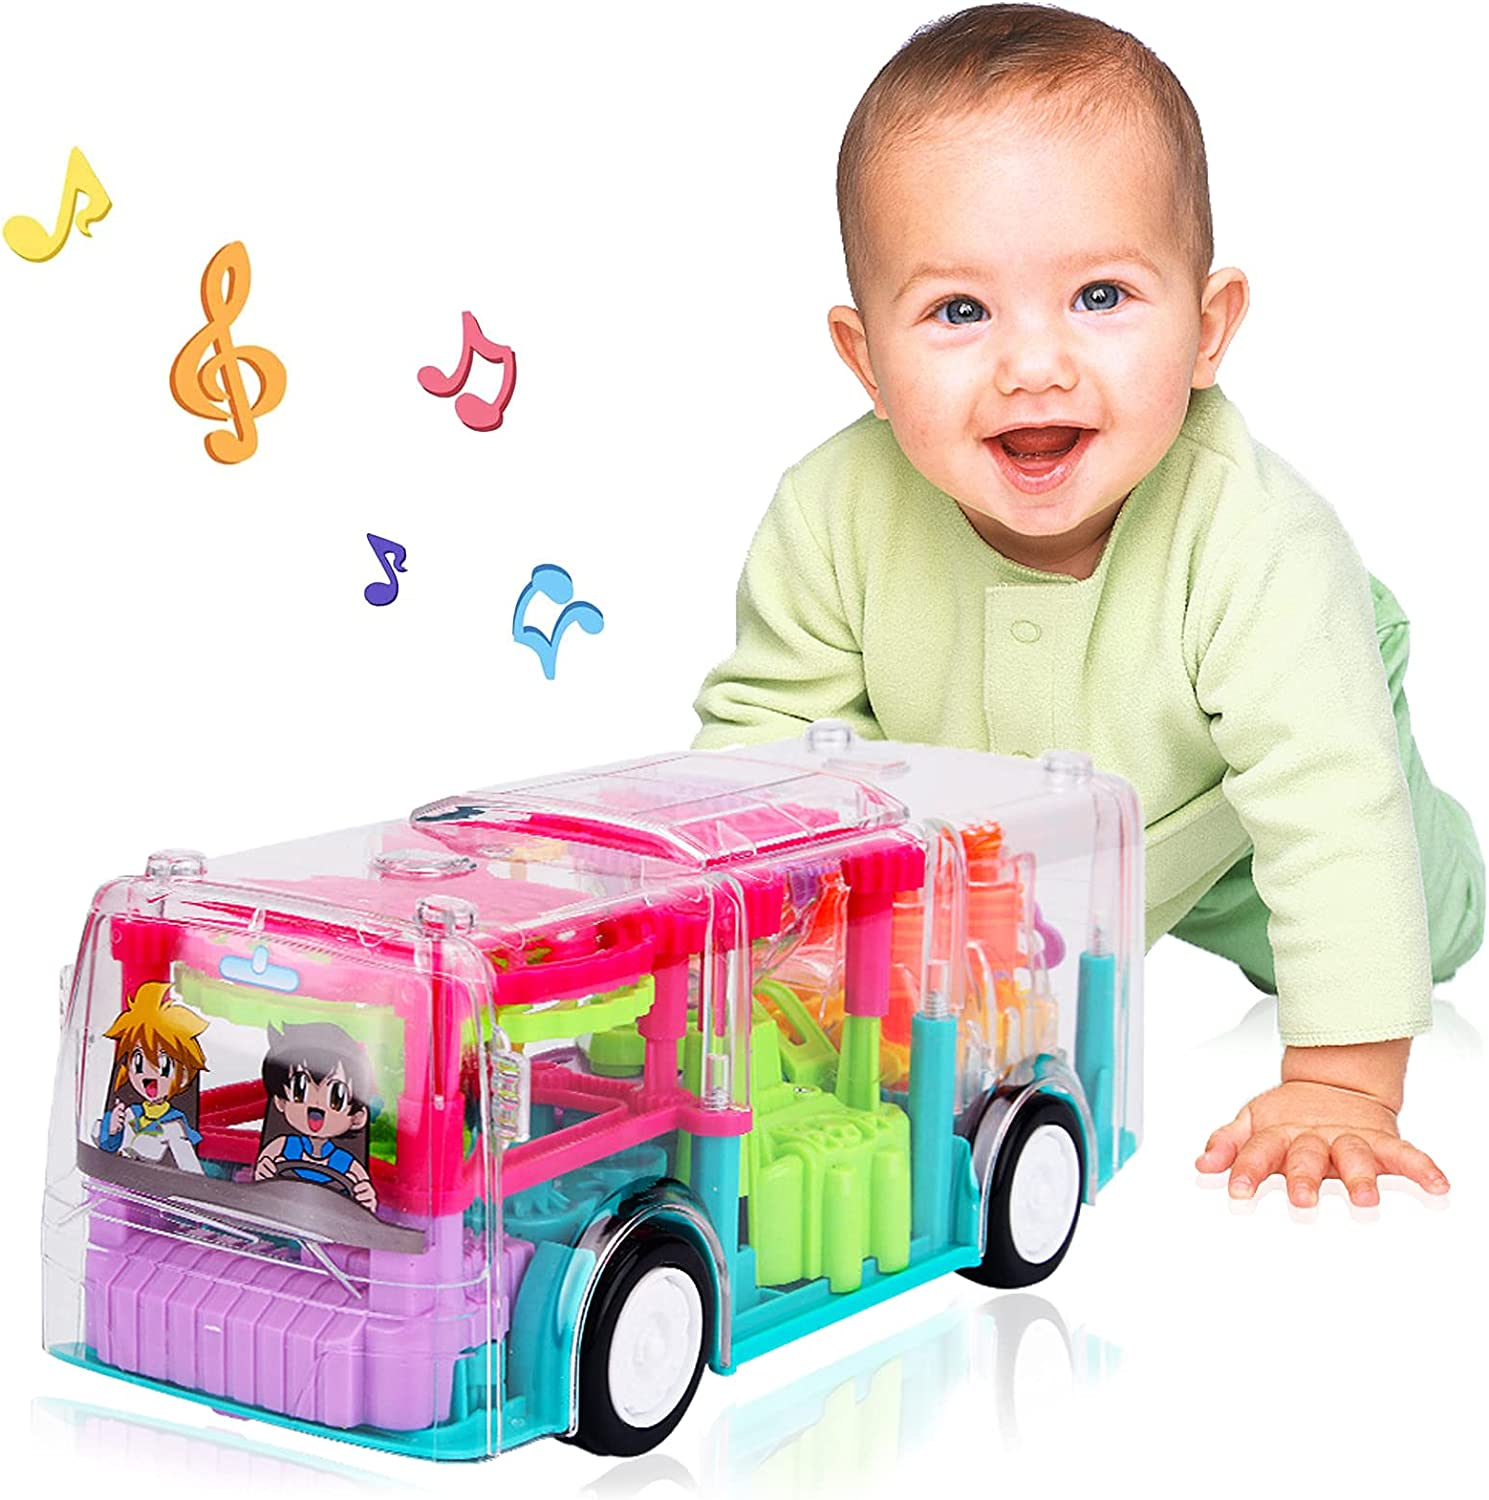 Noetoy Baby Toys 12-18 Months, Electronic Bus Infant Baby Toys 6 to 12 Months Kids Crawling Toys with Cool Light & Sound Effect, Early Educational Gift Toys for 1 2 3 Year Old Boys Girls (Bus)